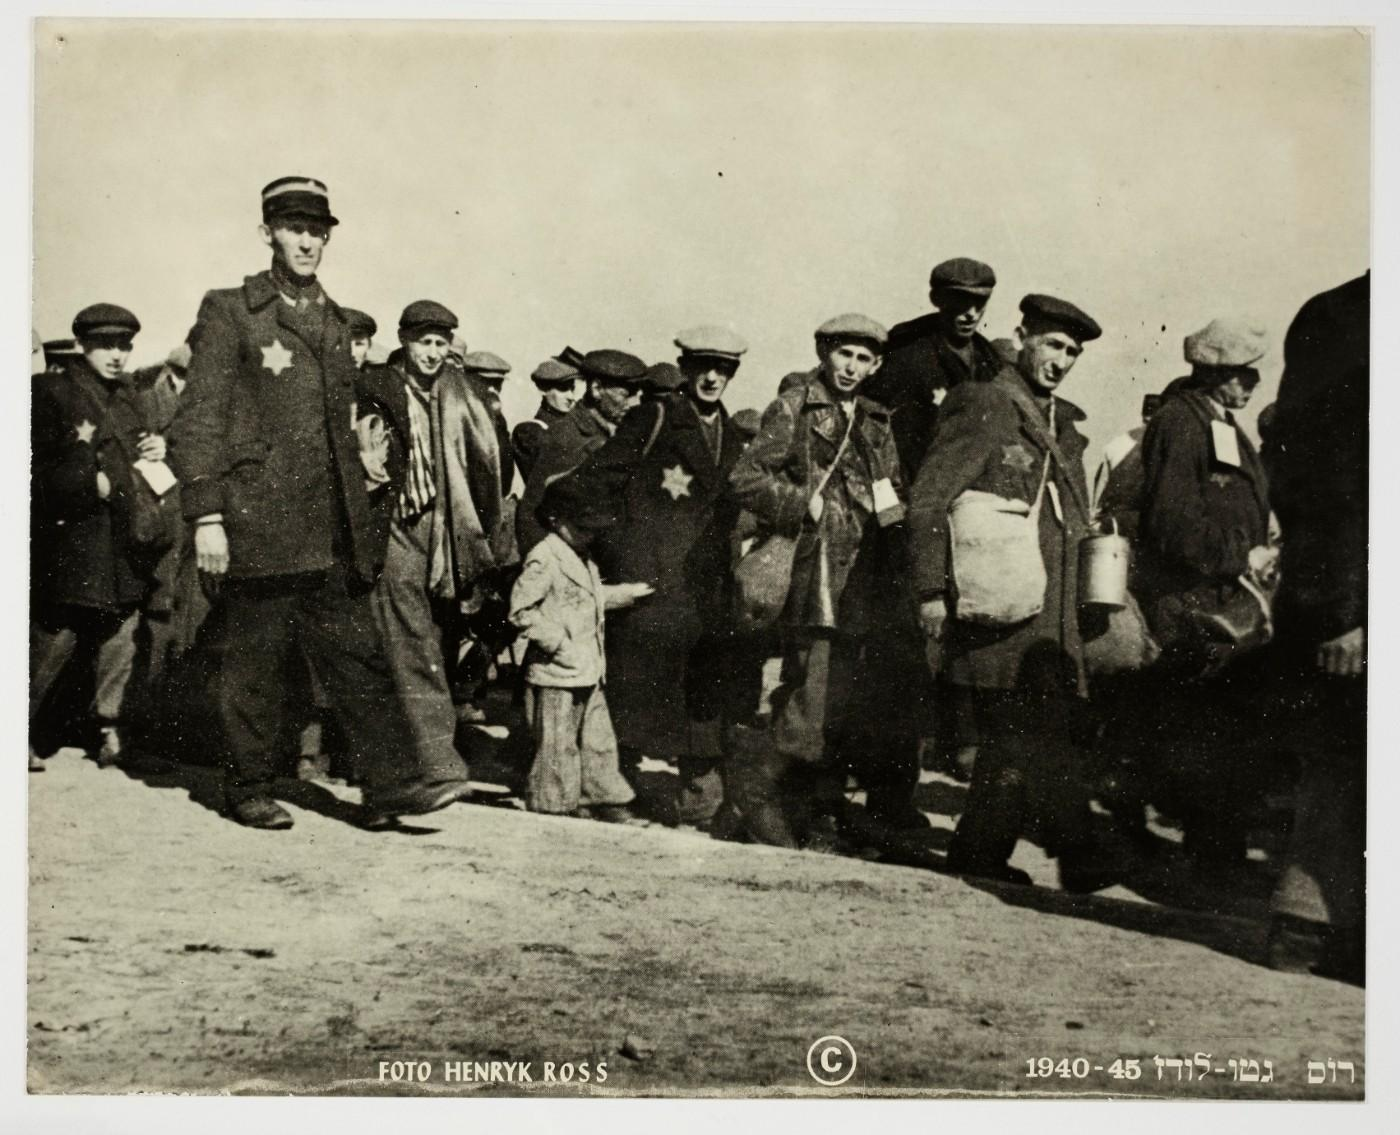 Henryk Ross, Deportation, people walking looking at camera, small boy in center escorted by Ghetto police, 1942-1944